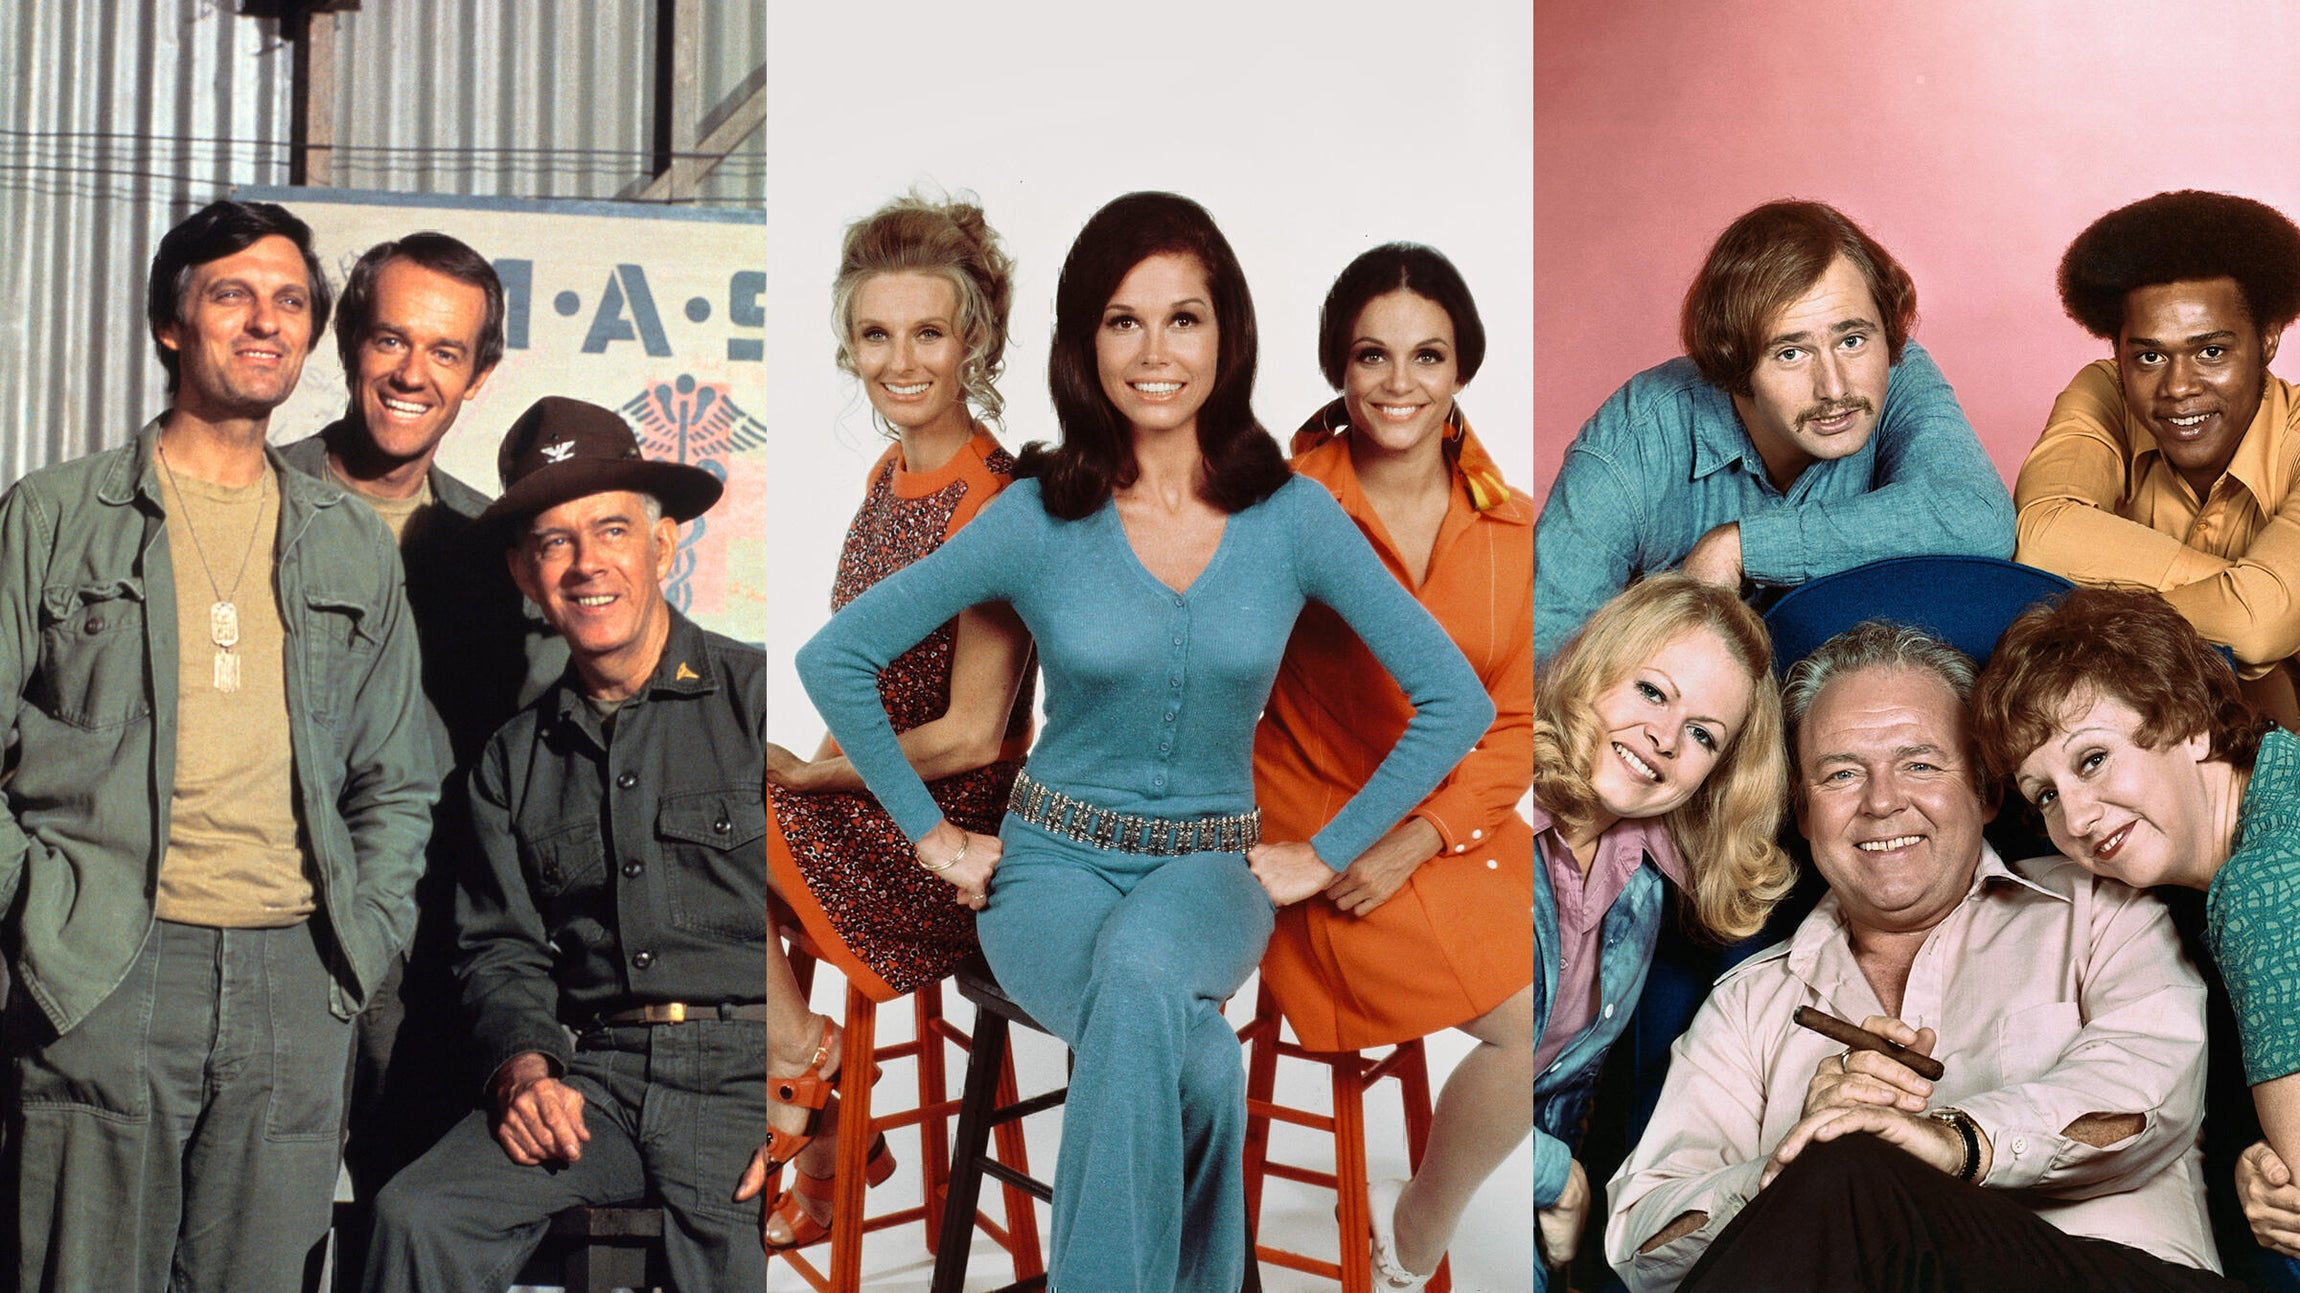 M*A*S*H, The Mary Tyler Moore Show, and All in the Family